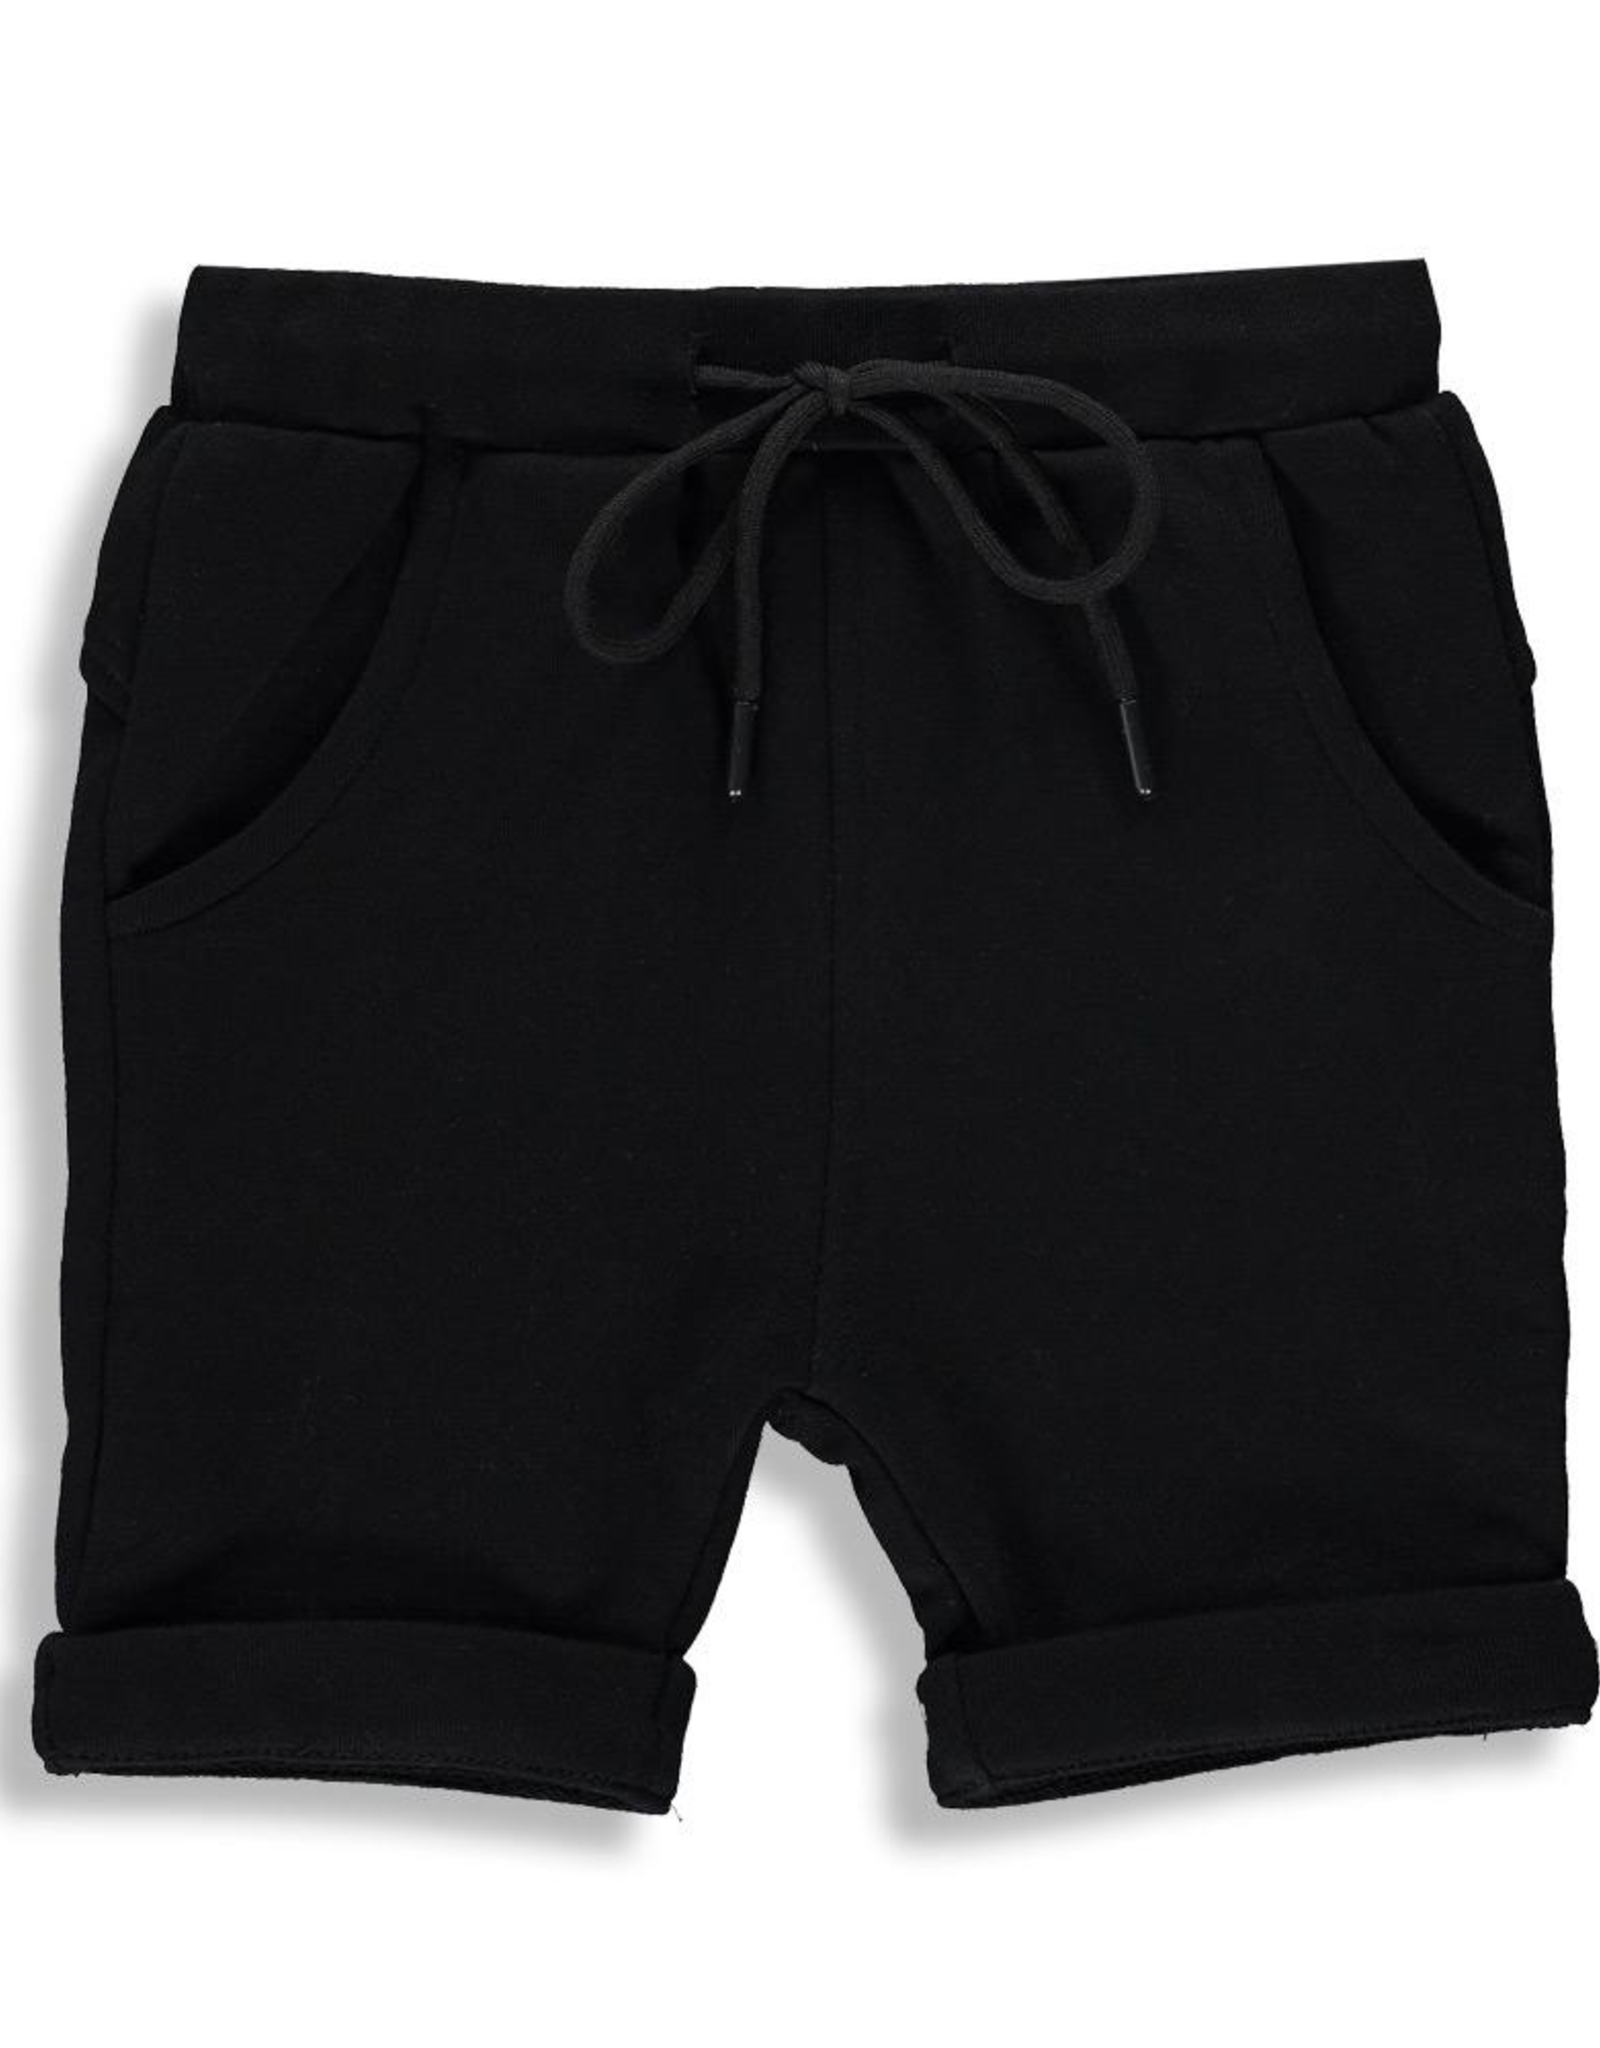 Birdz Children Cassette Long Shorts for Boy